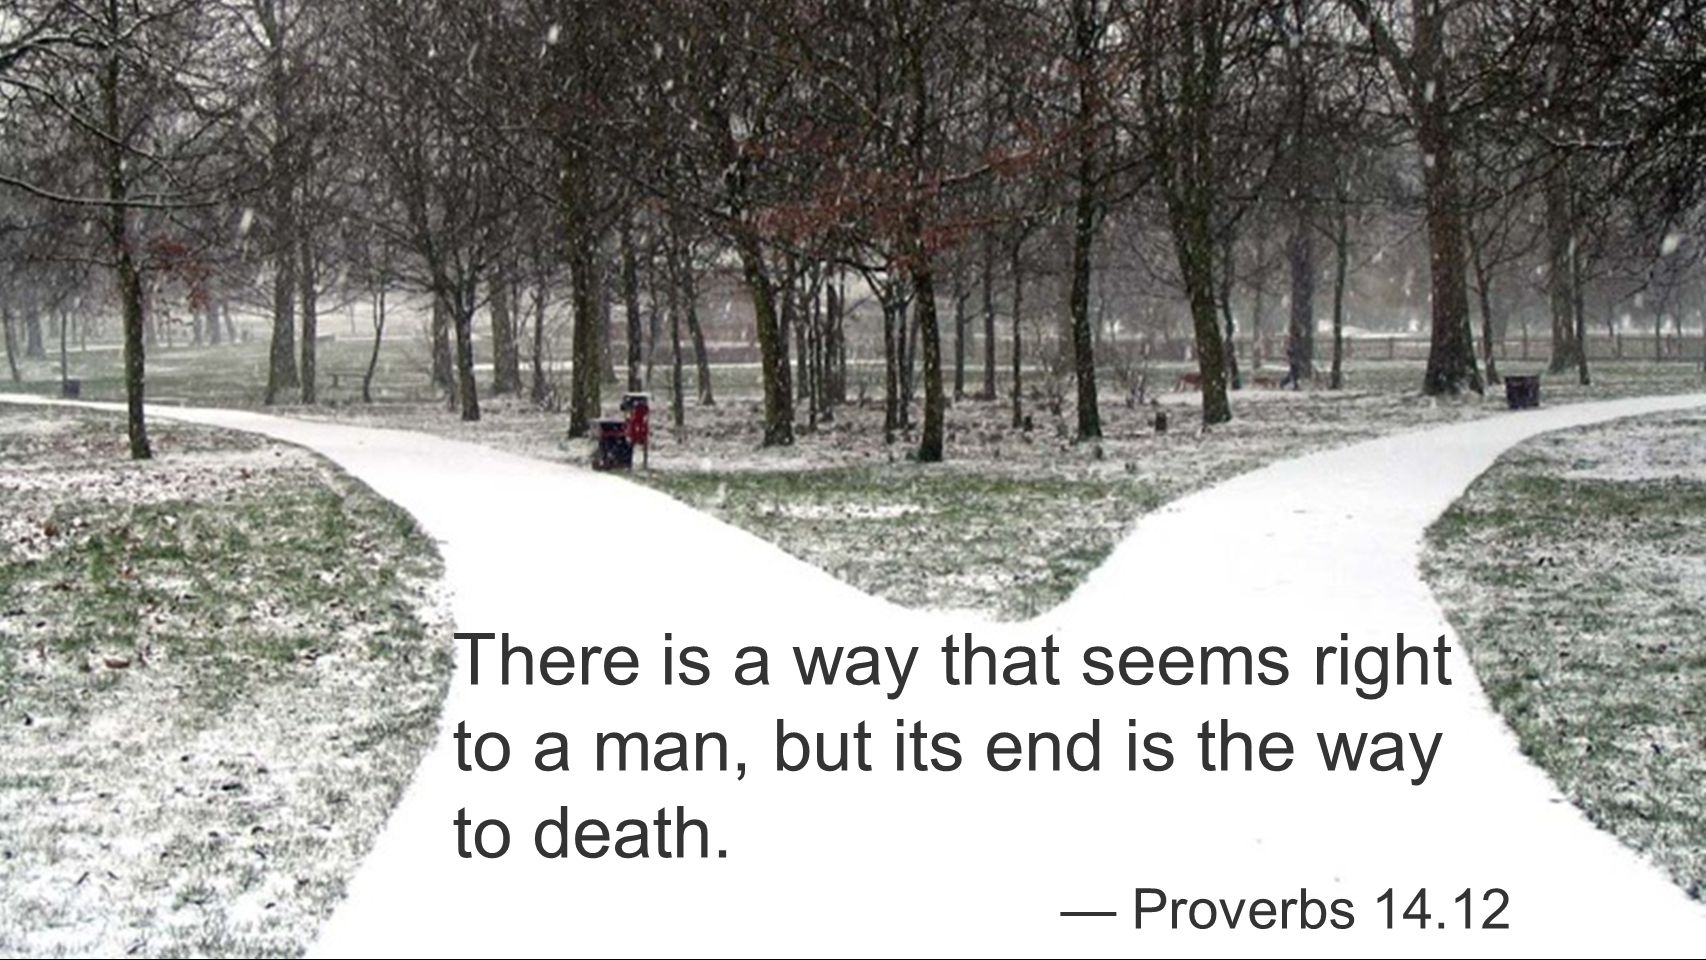 There is a way that seems right to a man, but its end is the way to death. — Proverbs 14.12